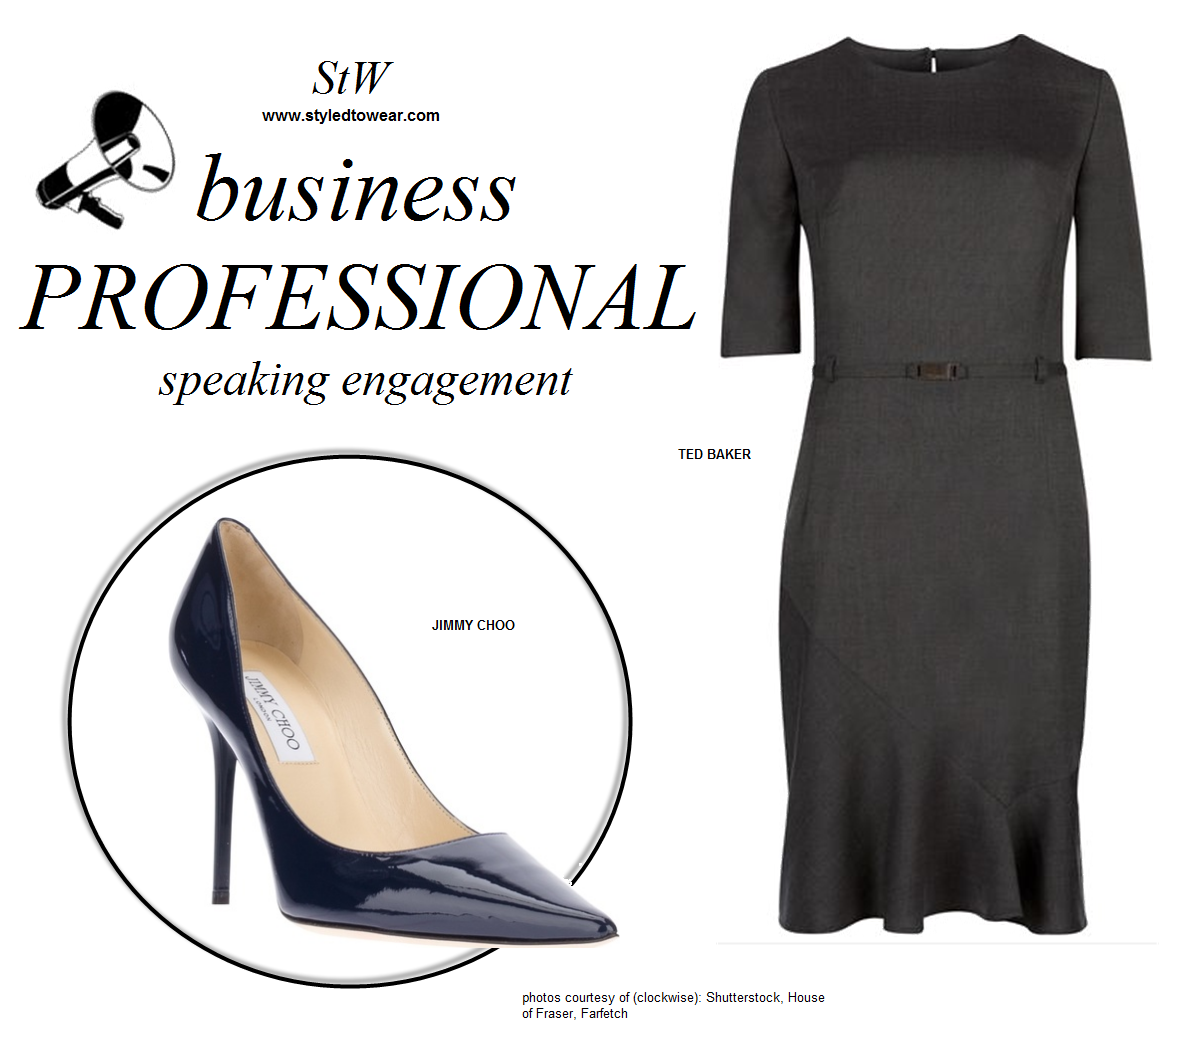 Business professional dress attire for women participating in panel discussions.